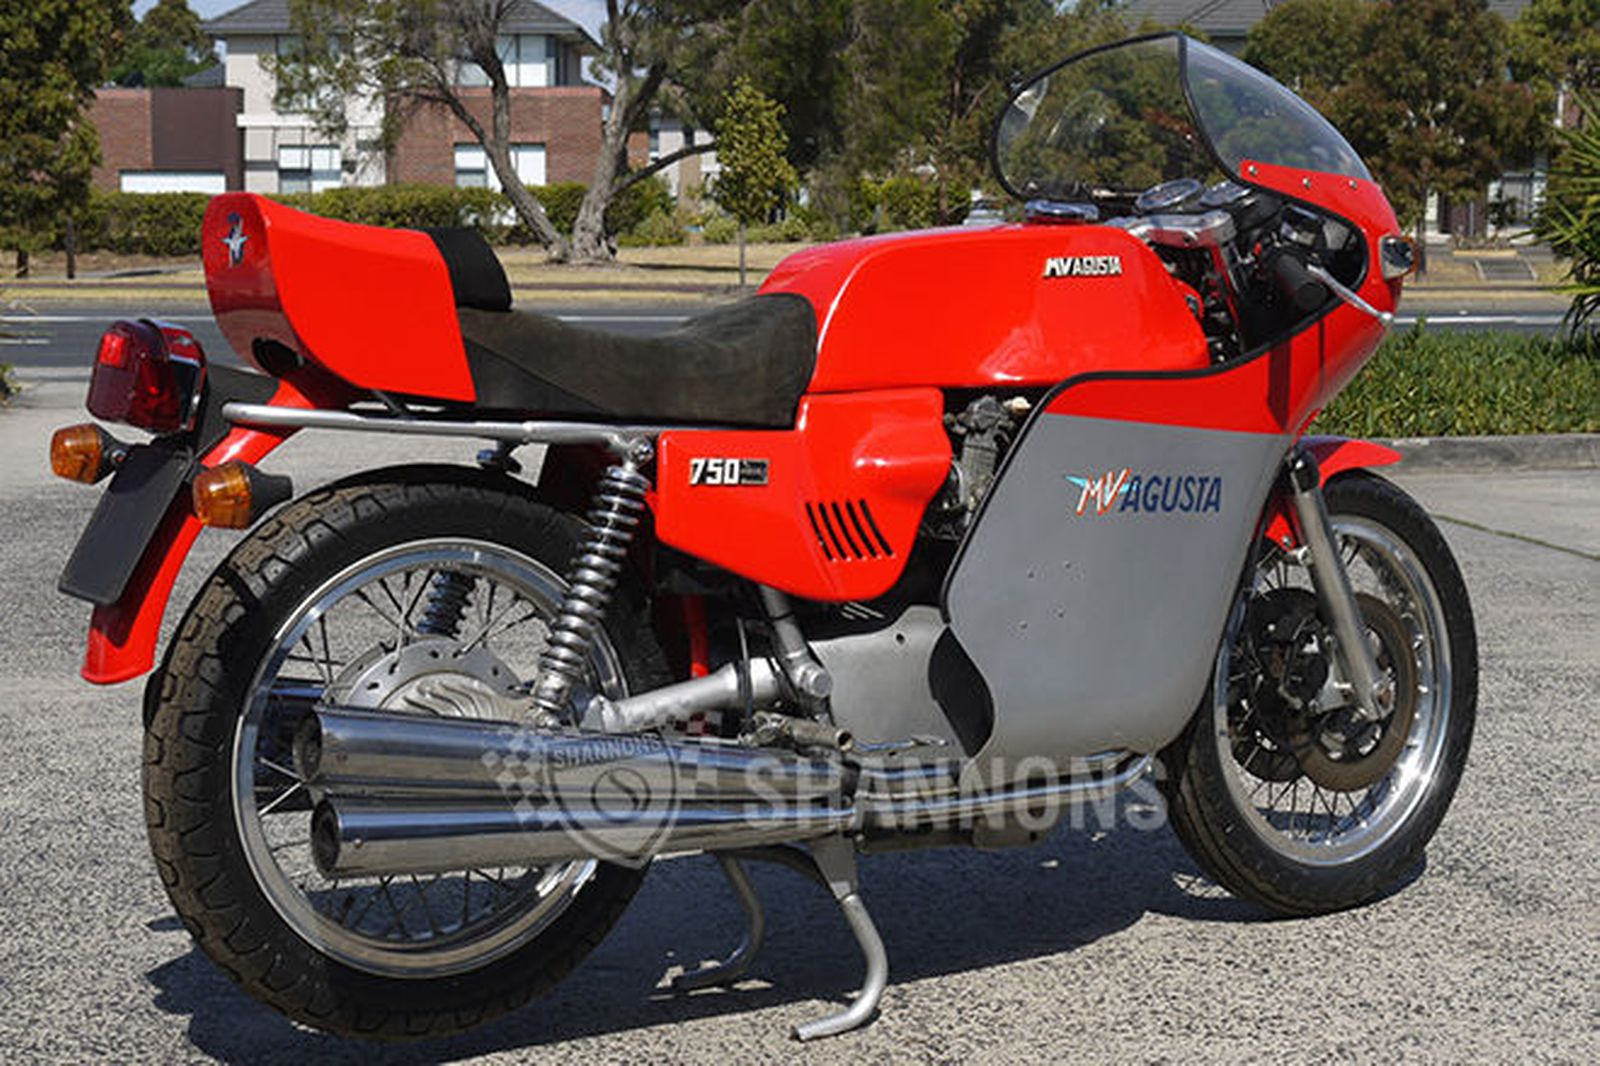 MV Agusta 750 S images #113175